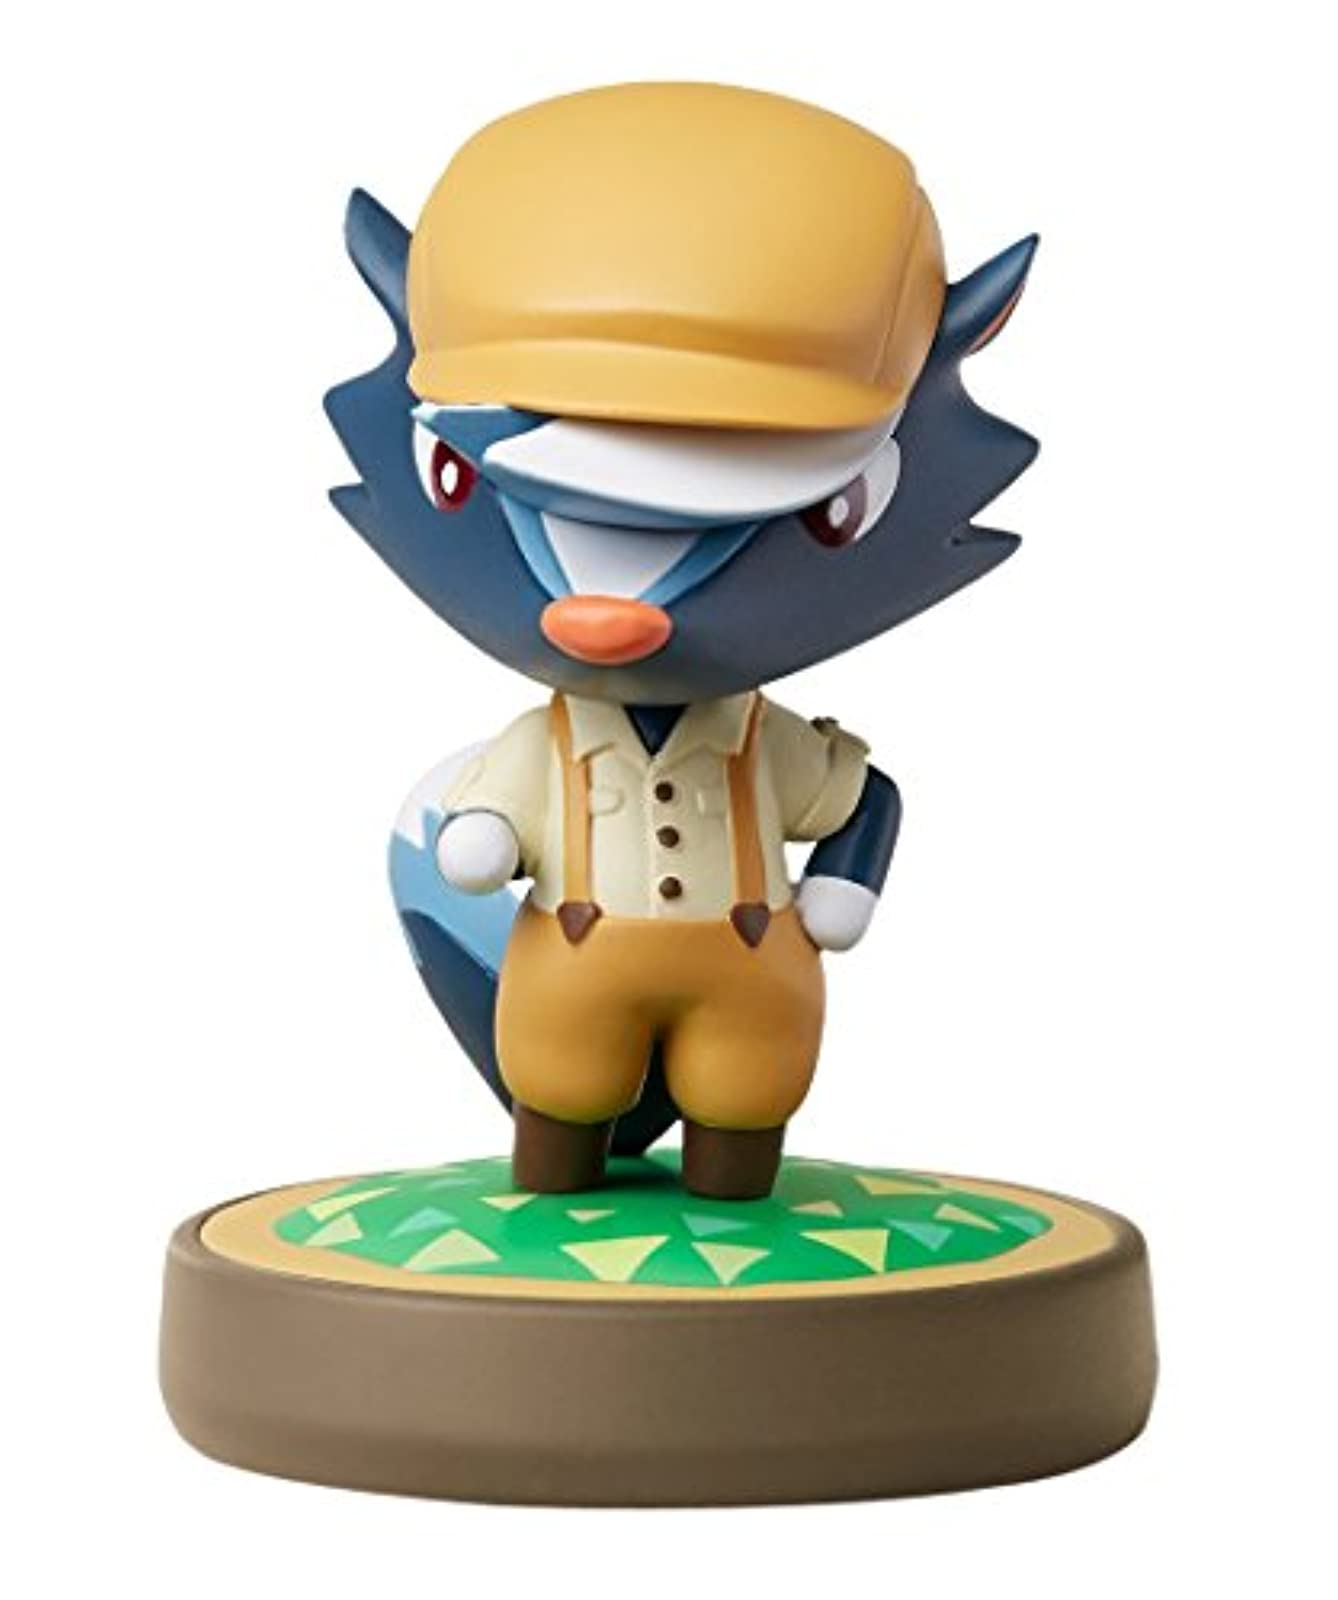 Kicks Amiibo Animal Crossing Series For Nintendo Switch Figure